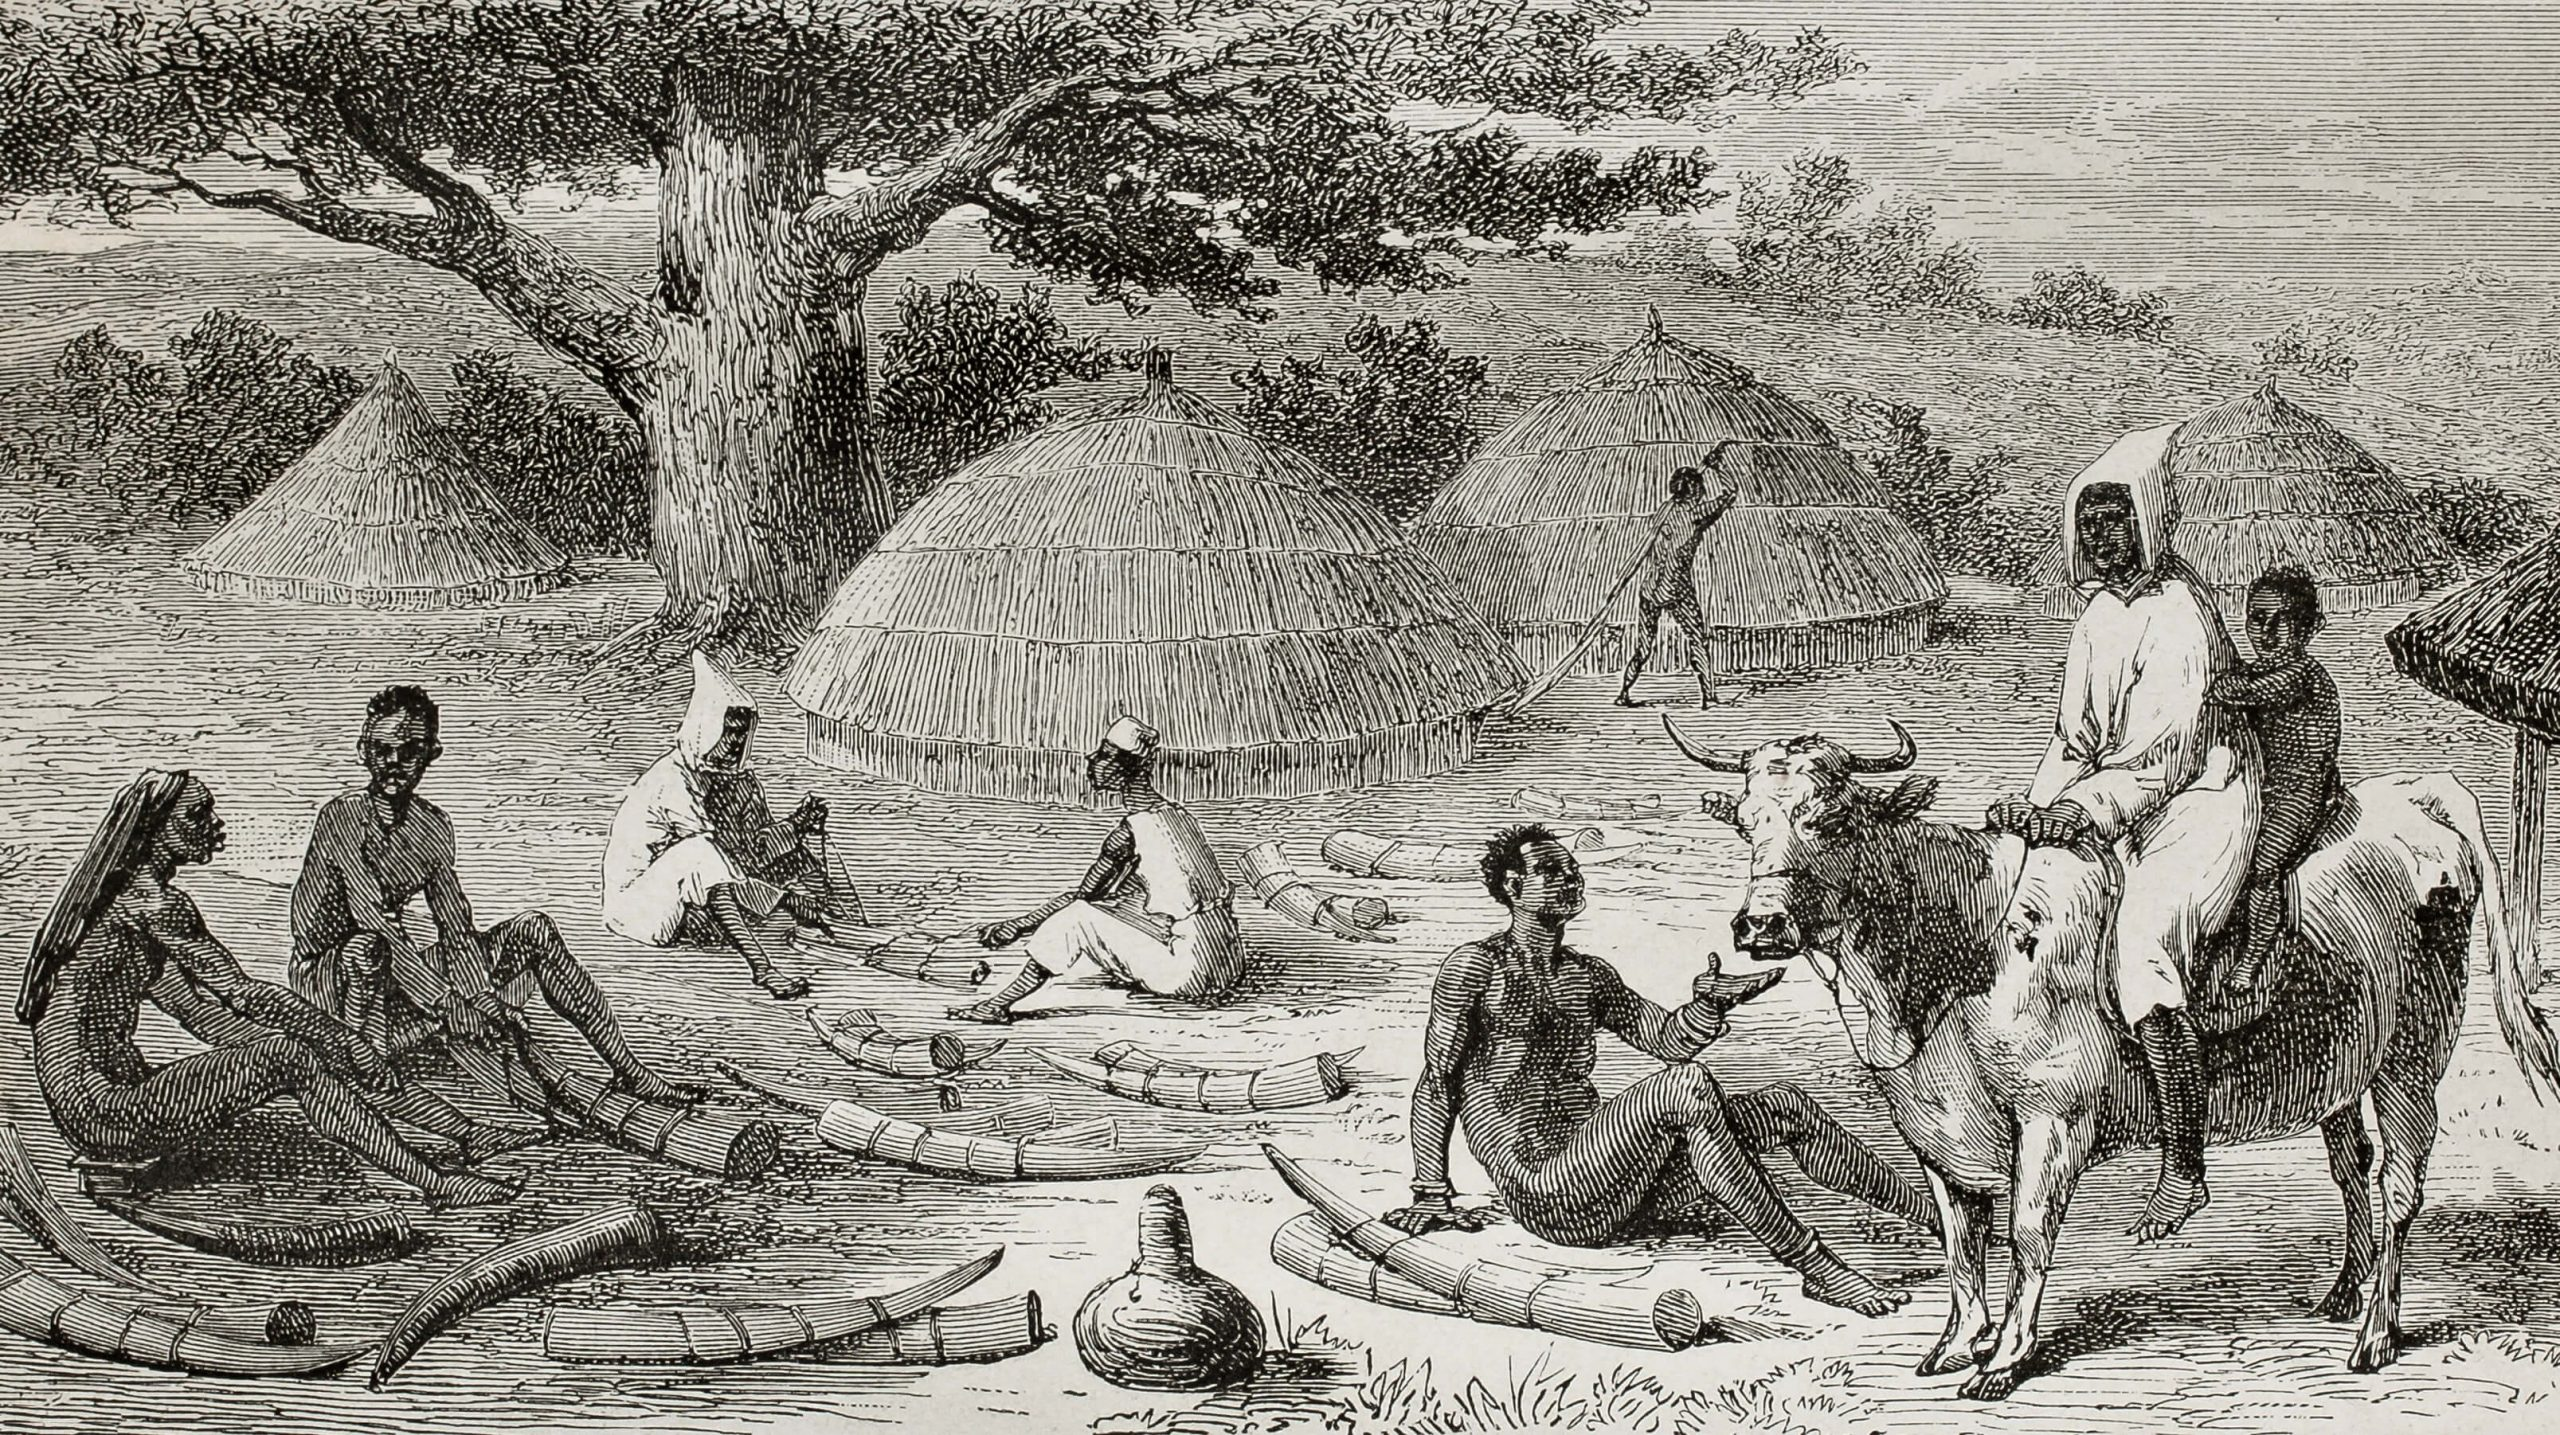 Old illustration of ivory traders